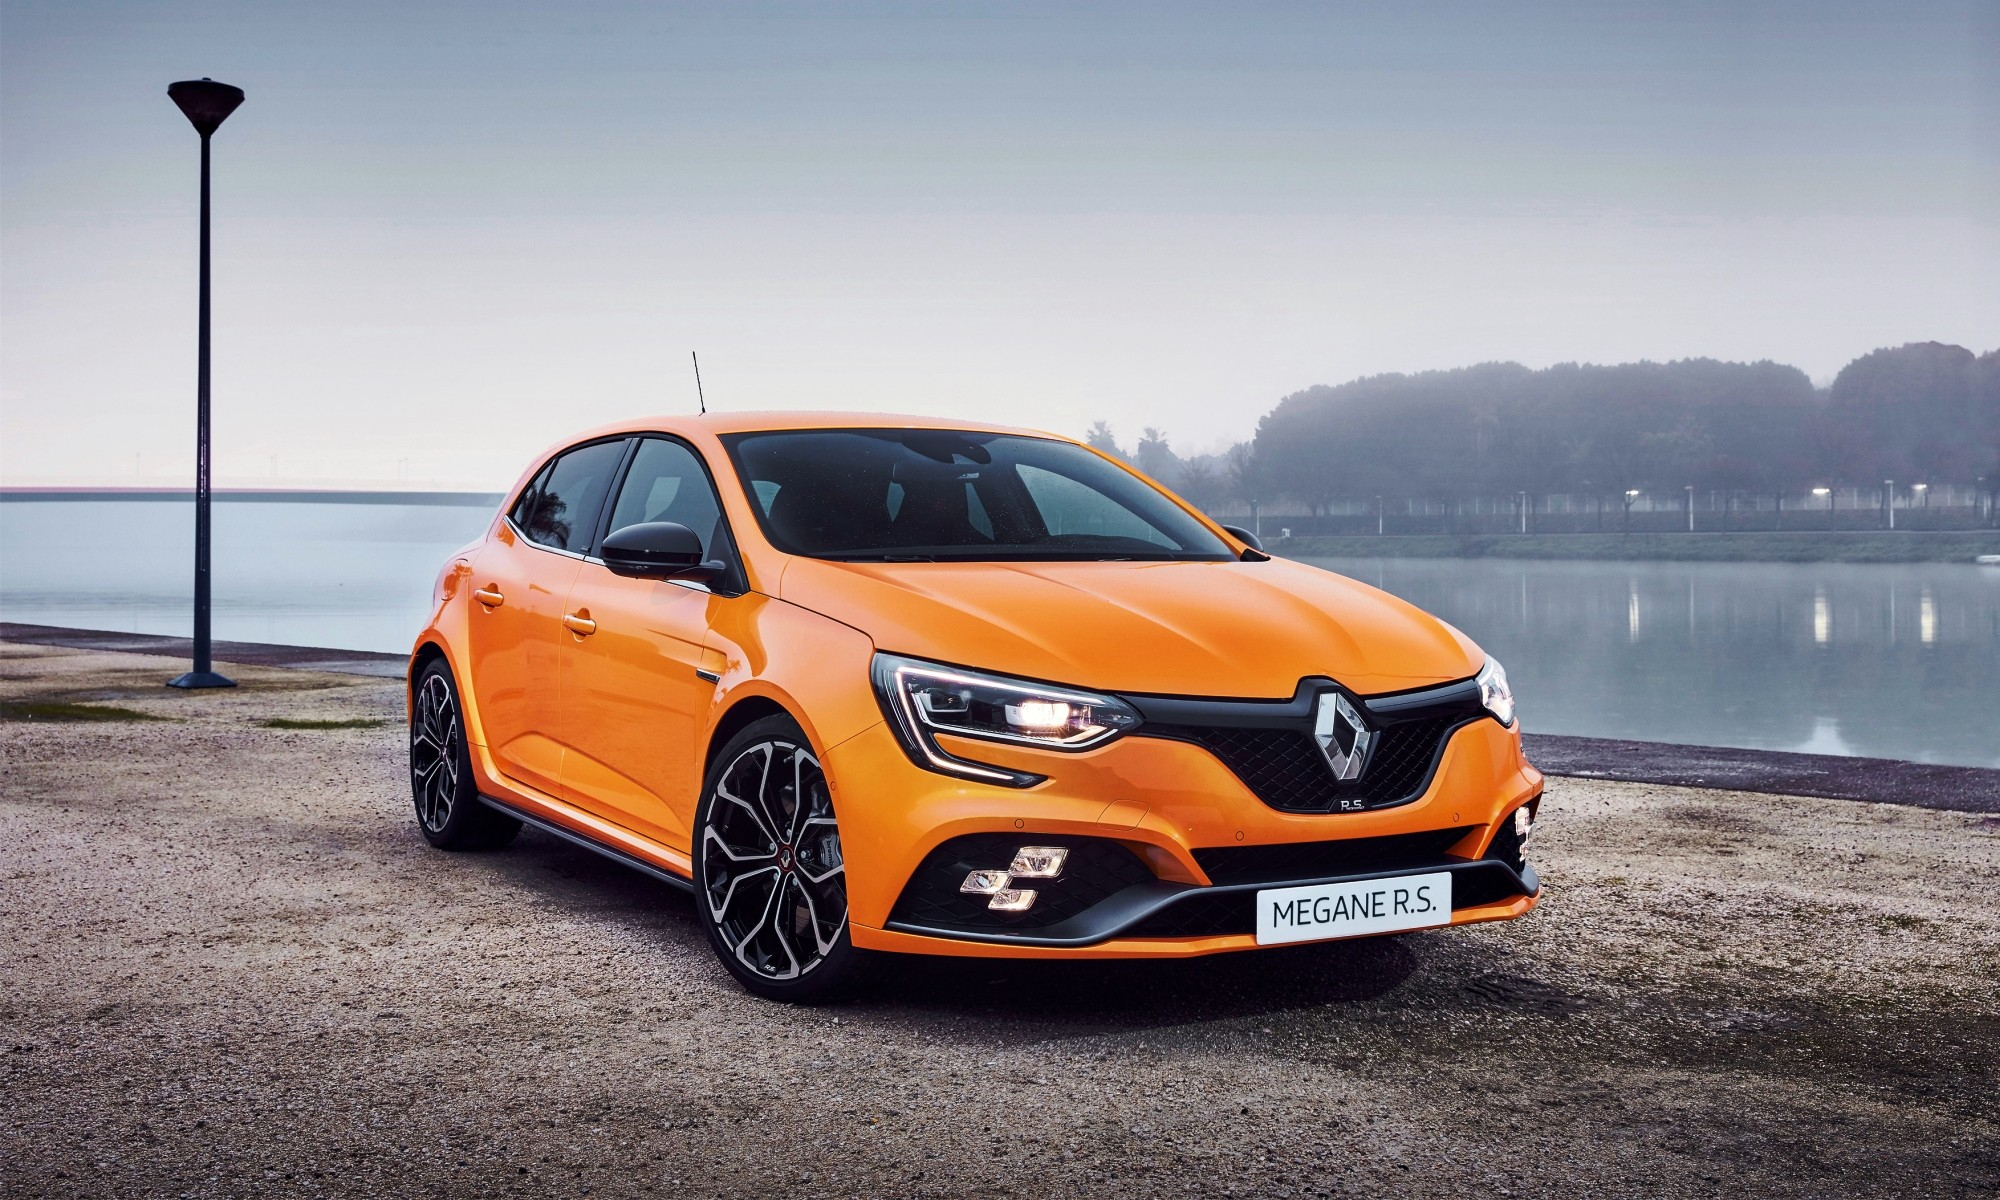 Renault Megane RS launched in SA earlier this week  Full